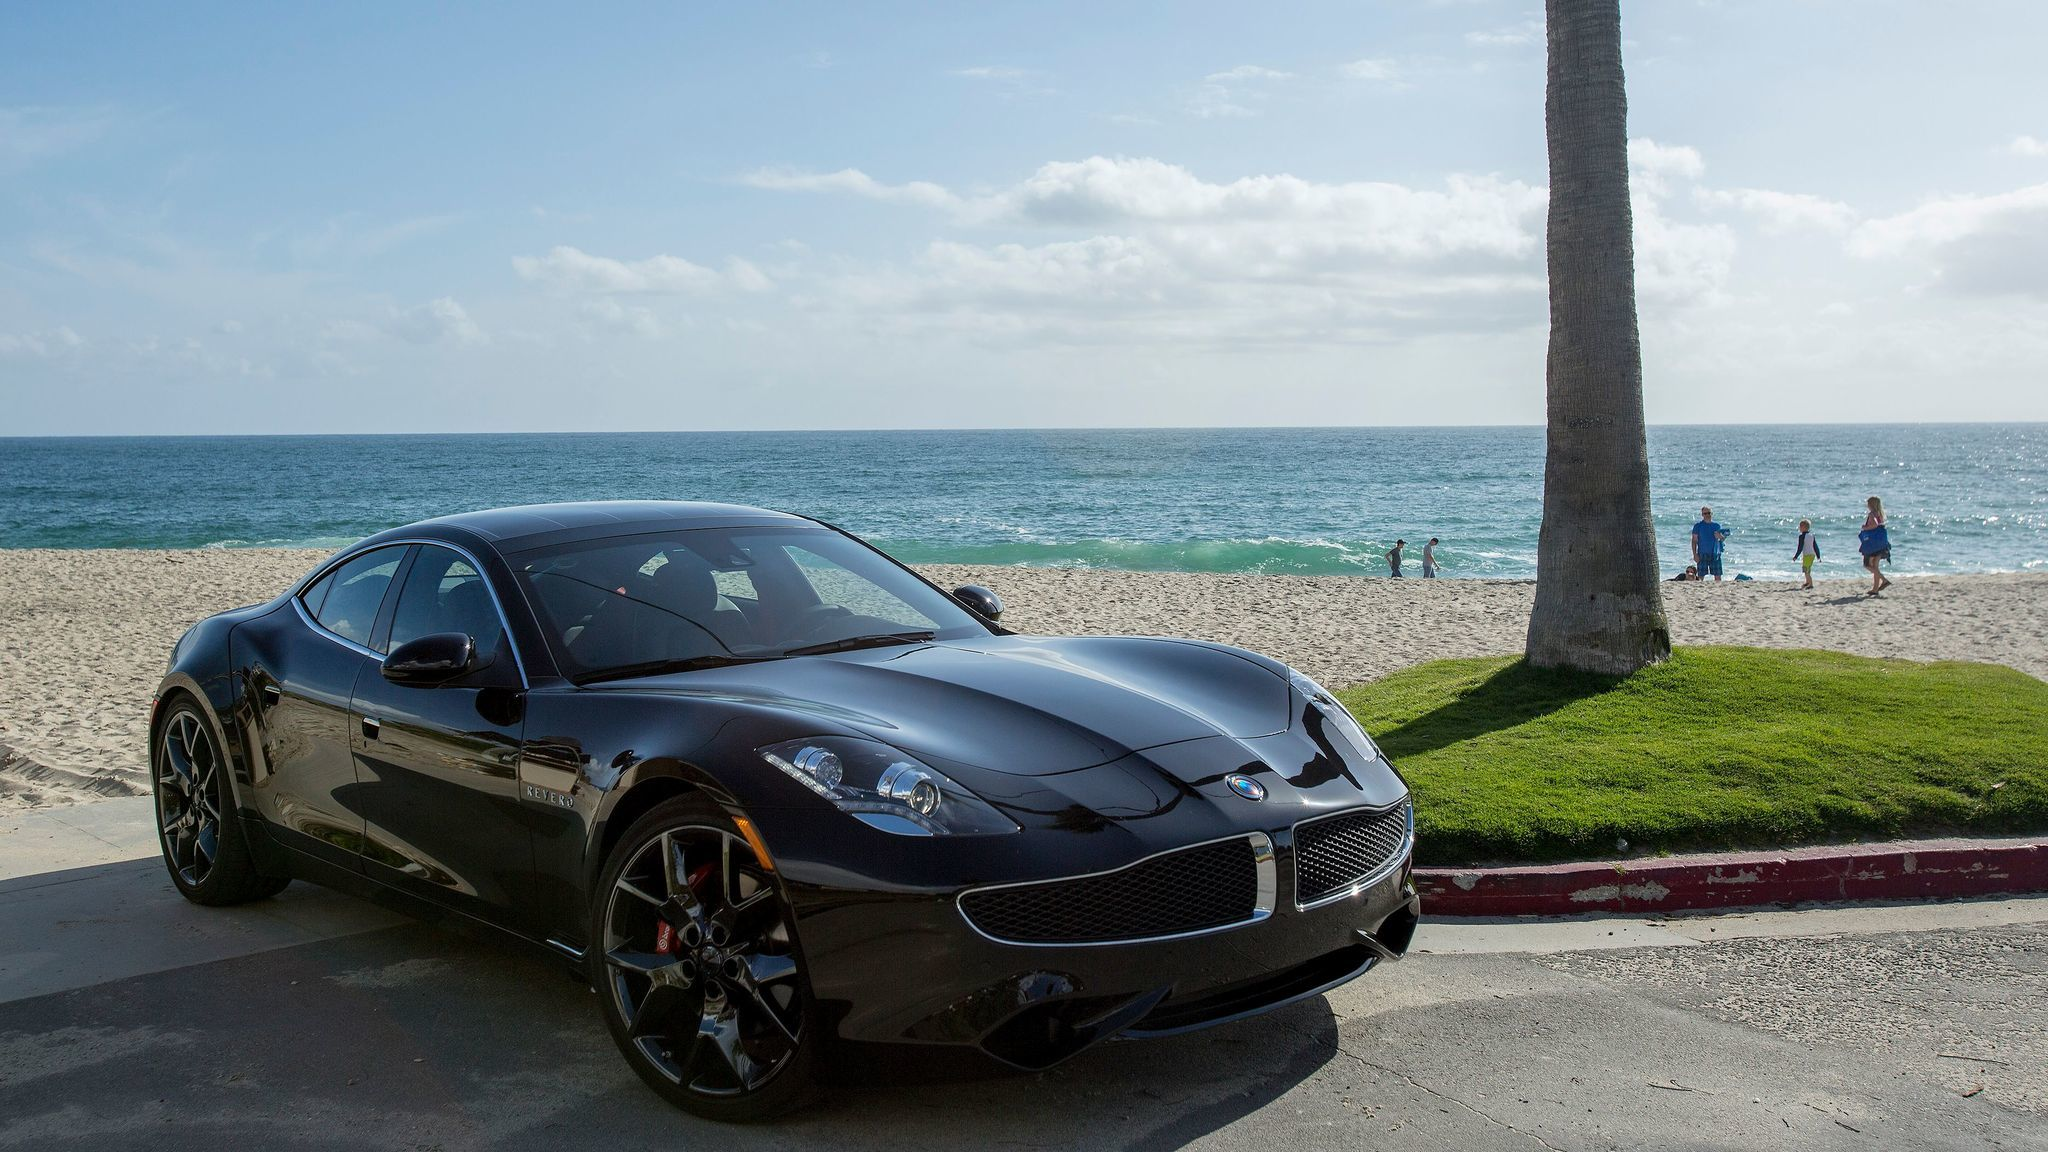 The Sleek Low Slung Revero Features Design Language From Pen Of Henrik Fisker